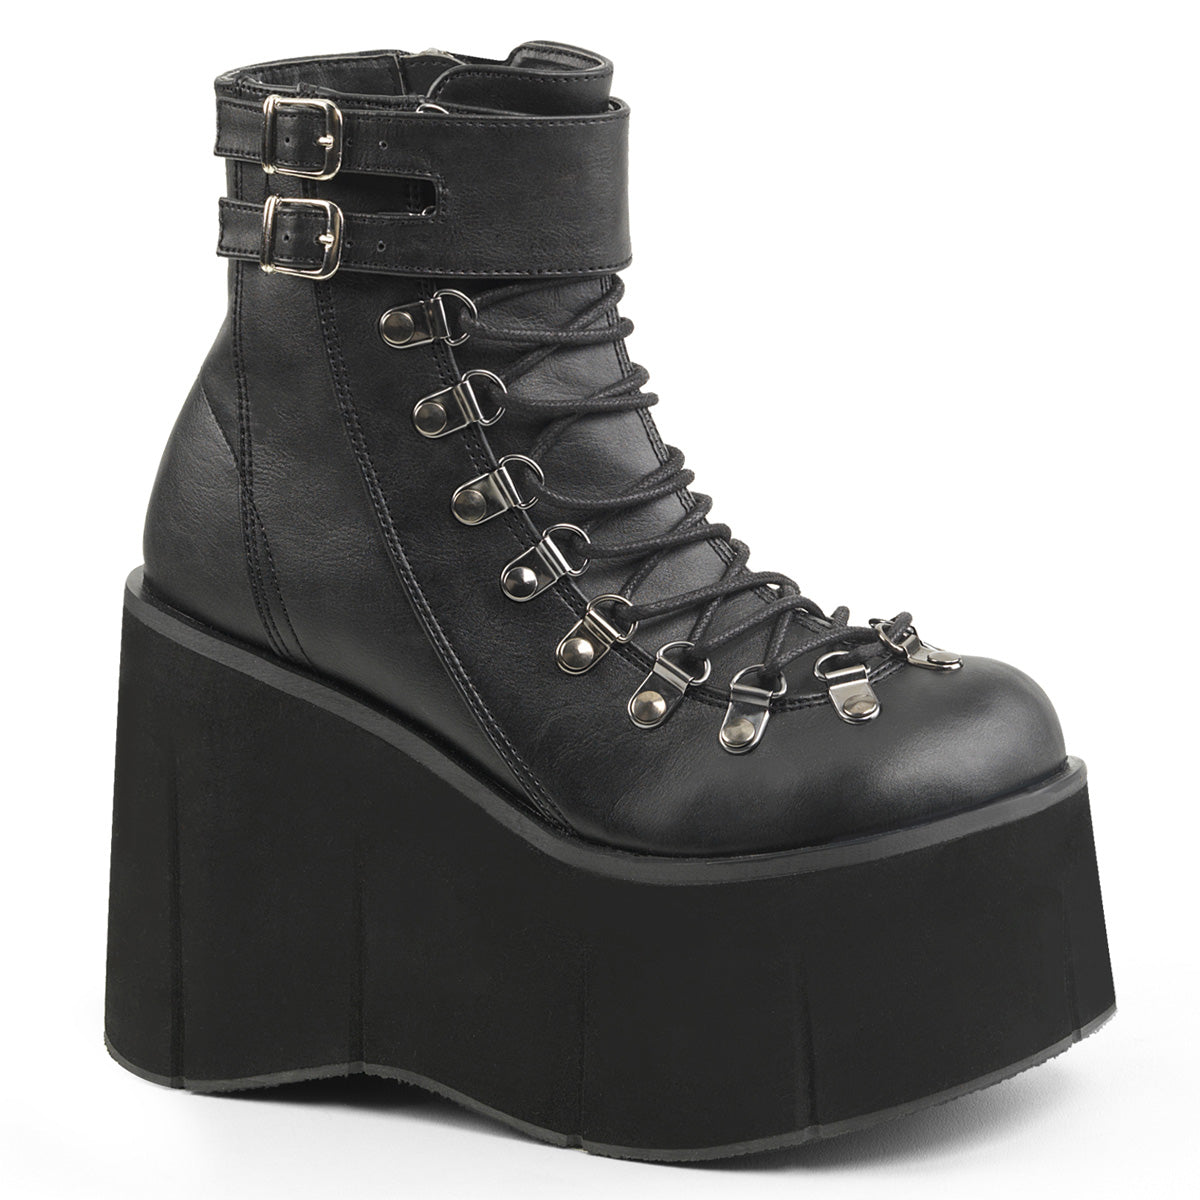 KERA-21 Black Vegan Leather